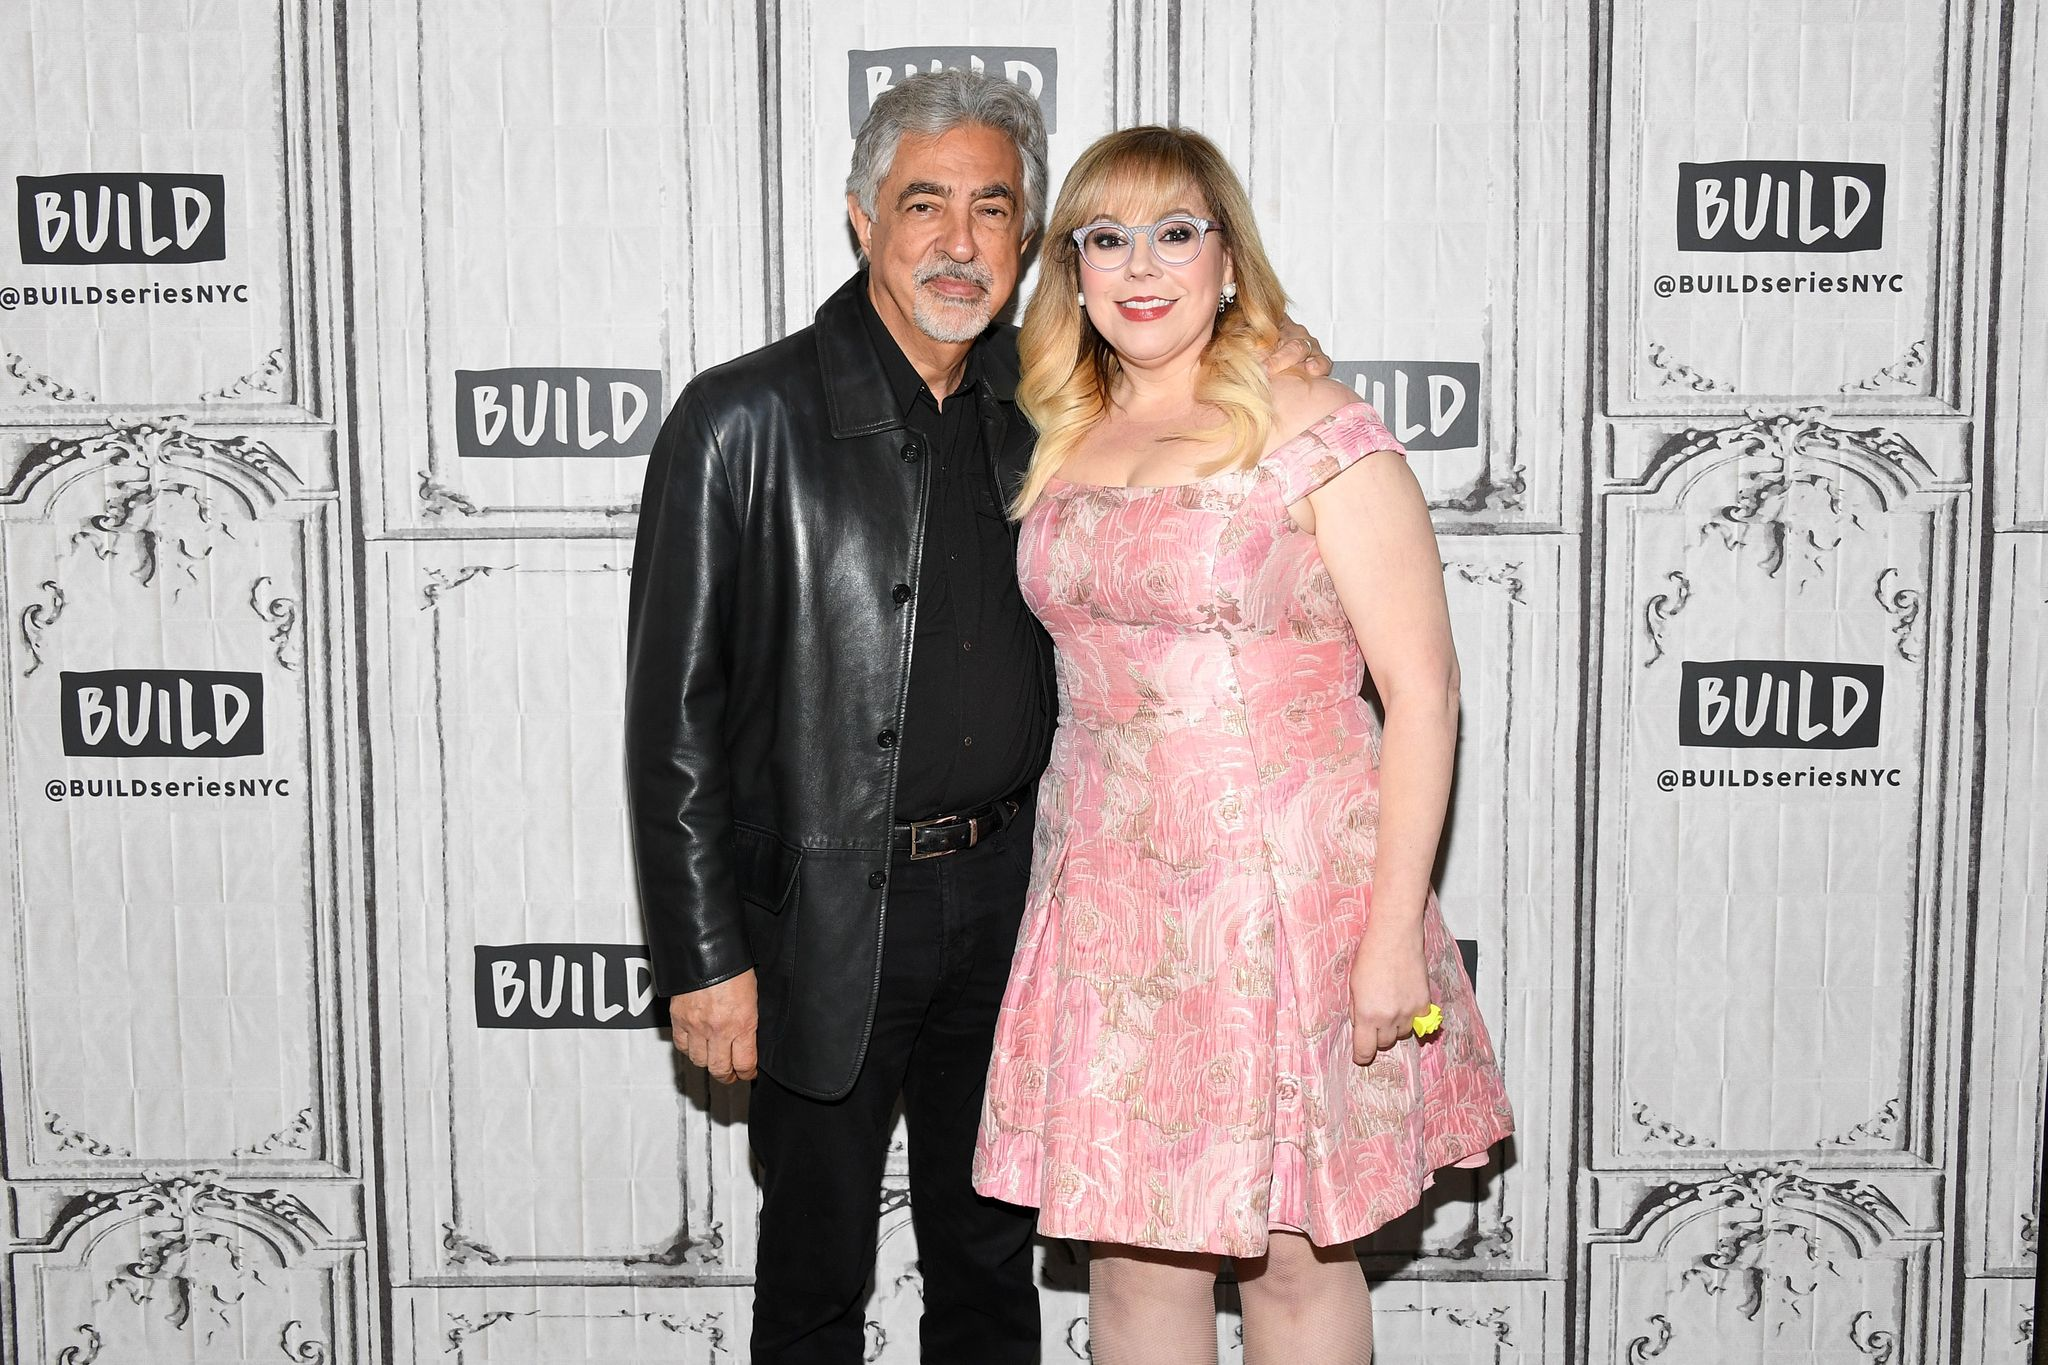 Joe Mantegna and Kirsten Vangsness / Getty Images